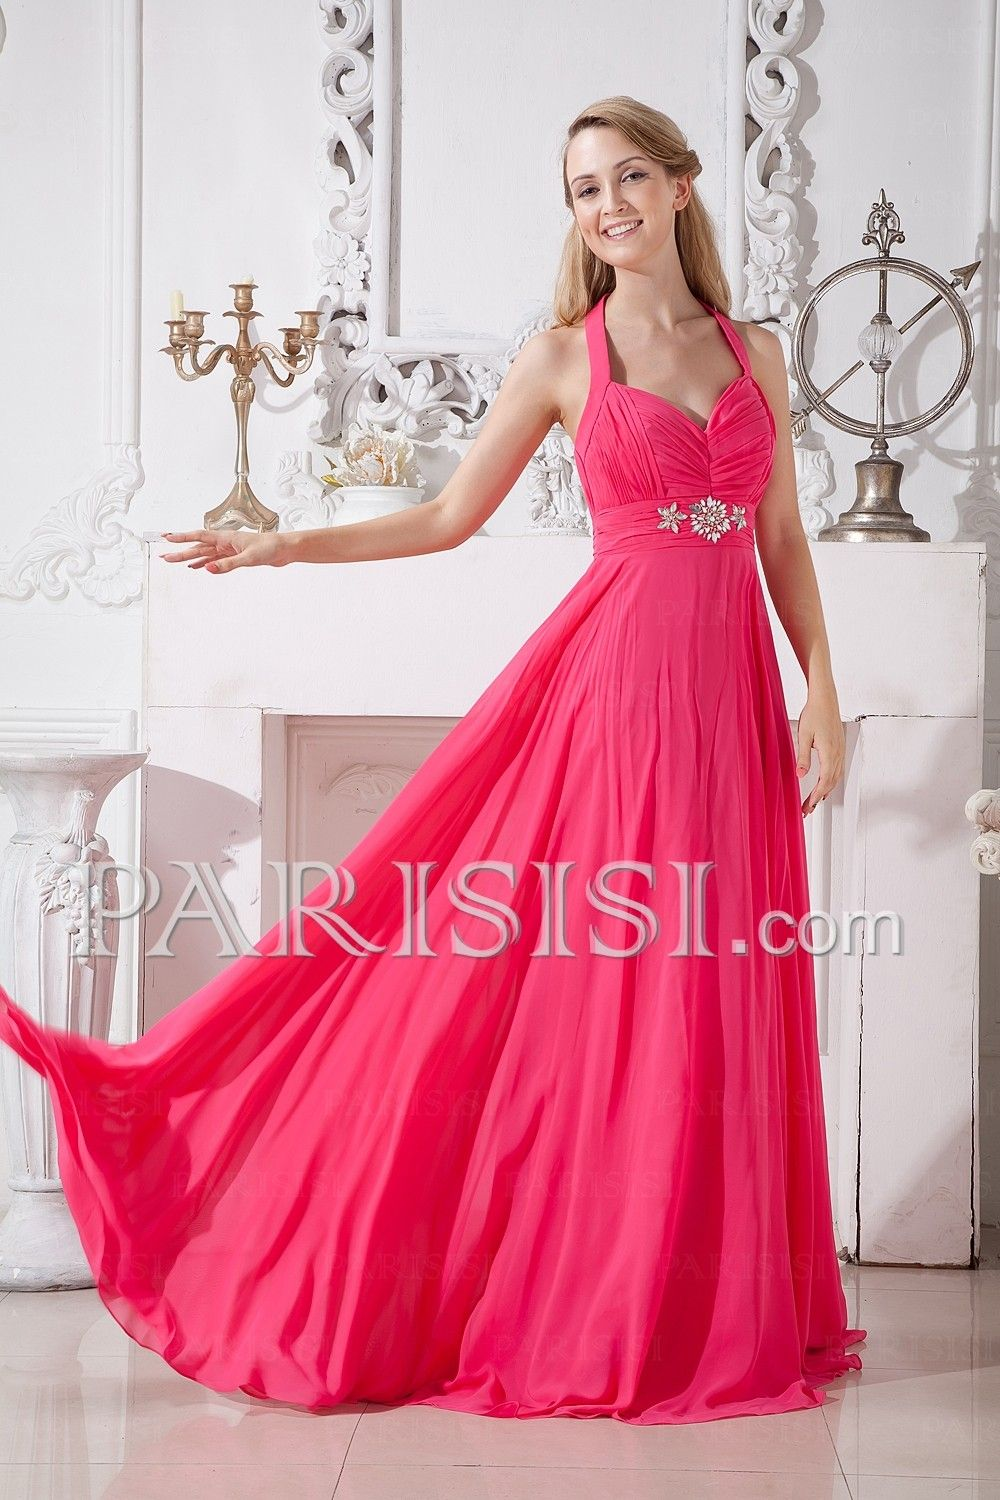 Chiffon rosa boden lnge reiverschluss empire modernelegant breathtaking hot pink empire halter beading formal prom dresses in chiffon ombrellifo Gallery